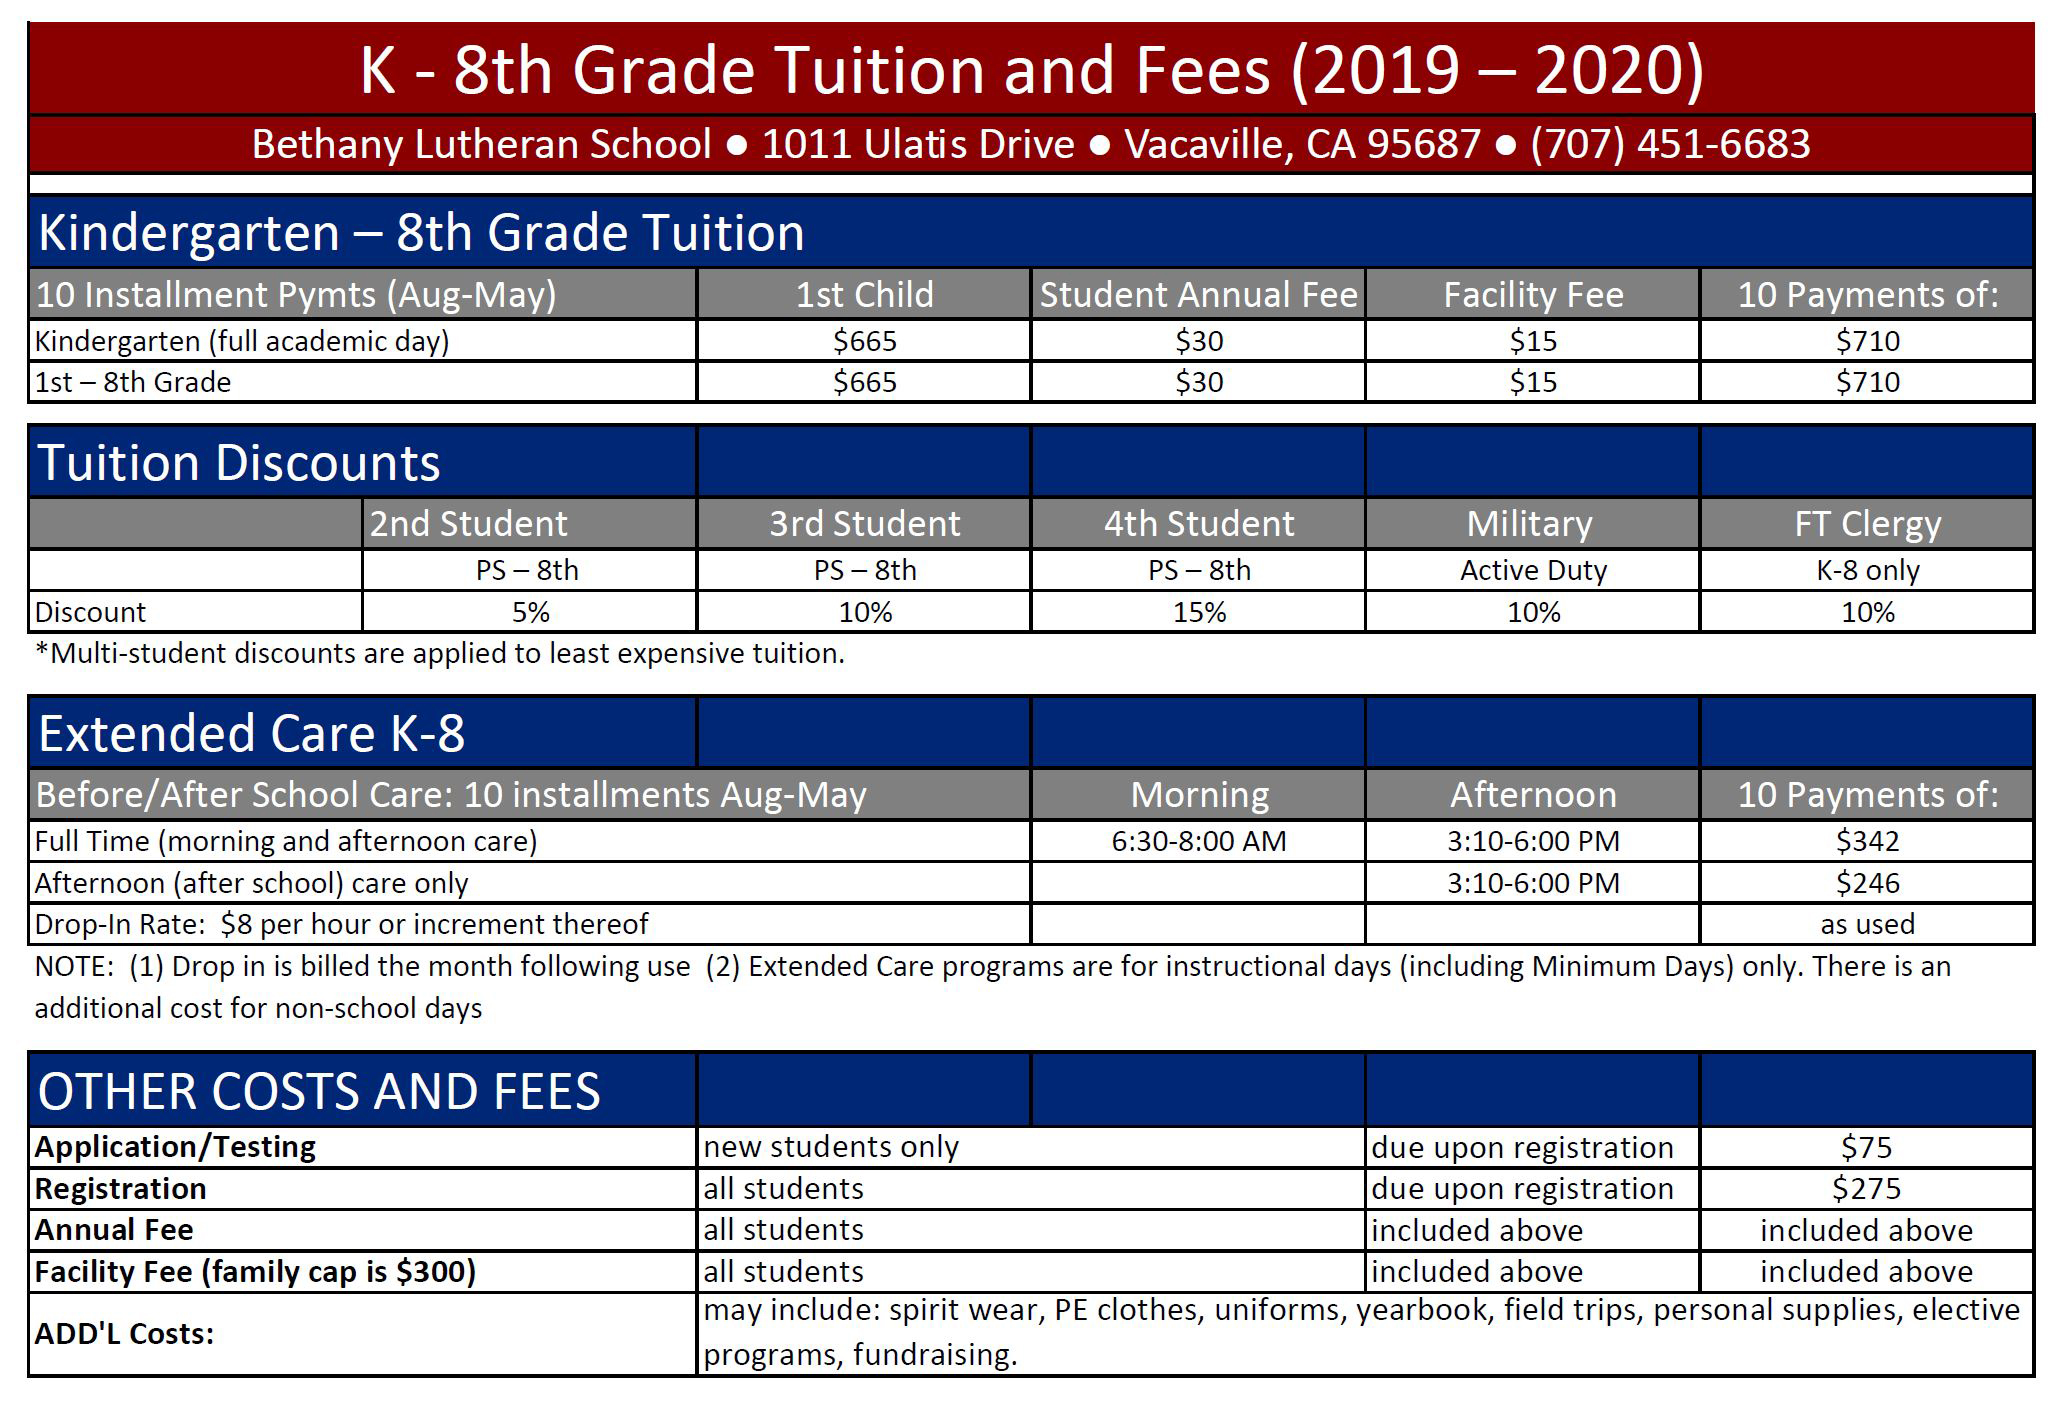 K-8 Tuition Fees | Bethany Lutheran Ministries